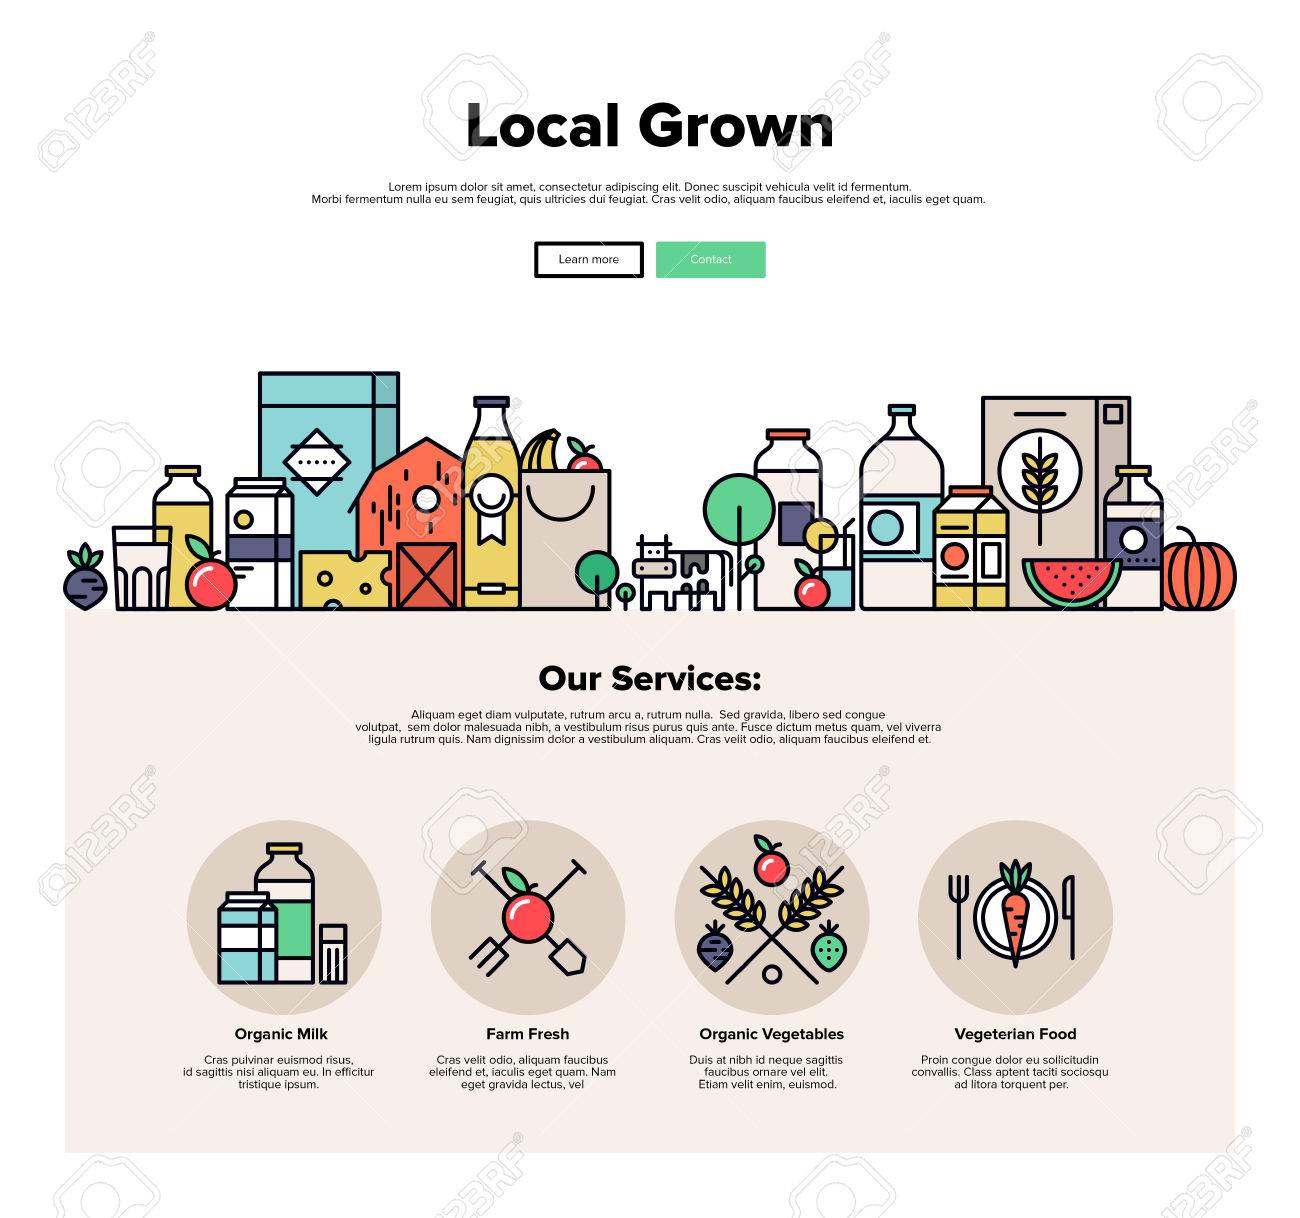 One page web design template with thin line icons of local farm grown vegetables, natural organic food, eco friendly seasonal products. Flat design graphic hero image concept, website elements layout. Stock Vector - 49564015